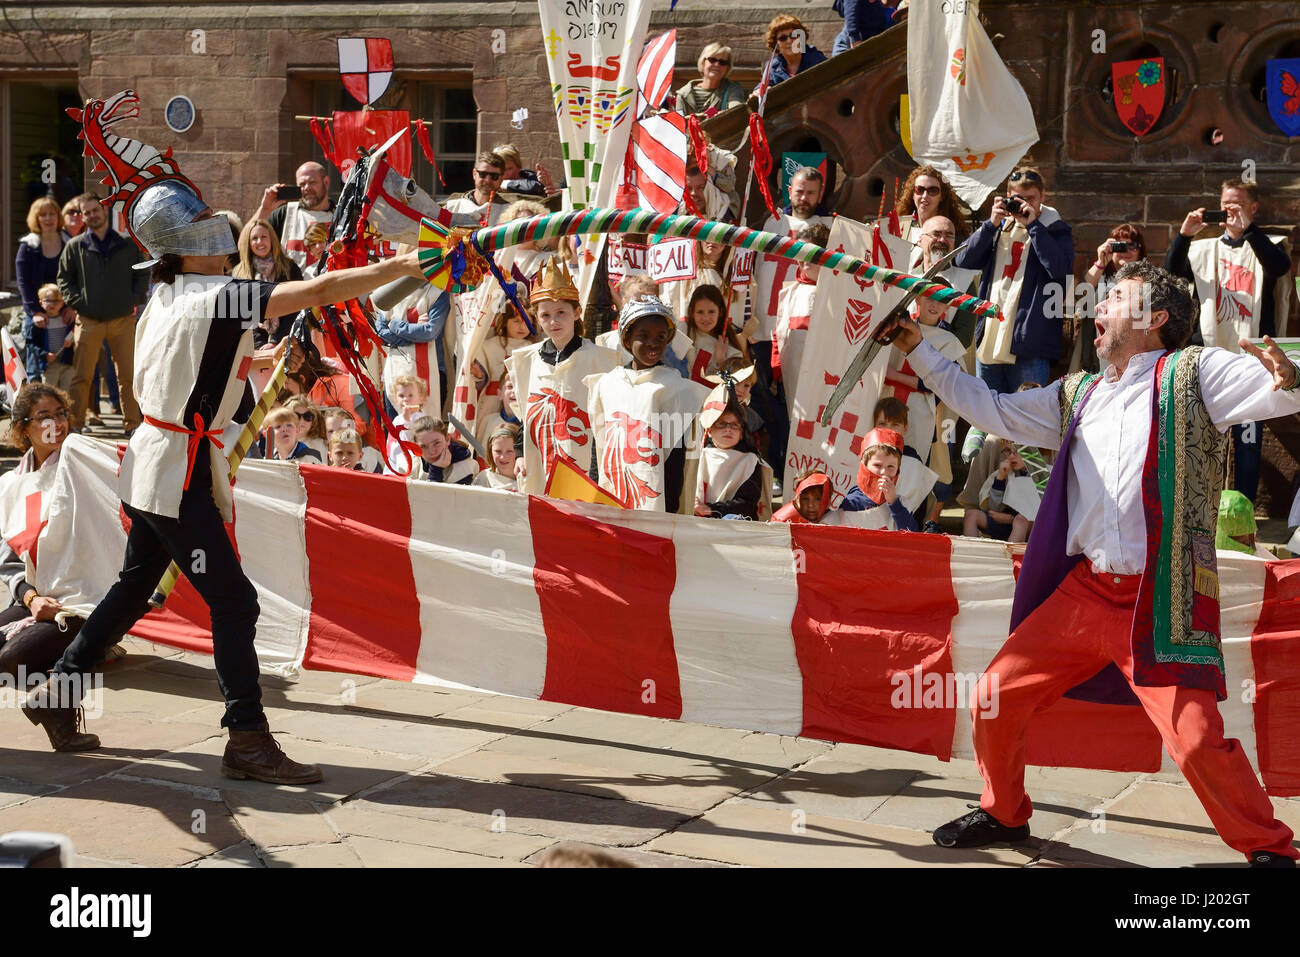 Chester, UK. 23rd April 2017. St George takes part in a jousting contest in Chester as part of the St George's - Stock Image